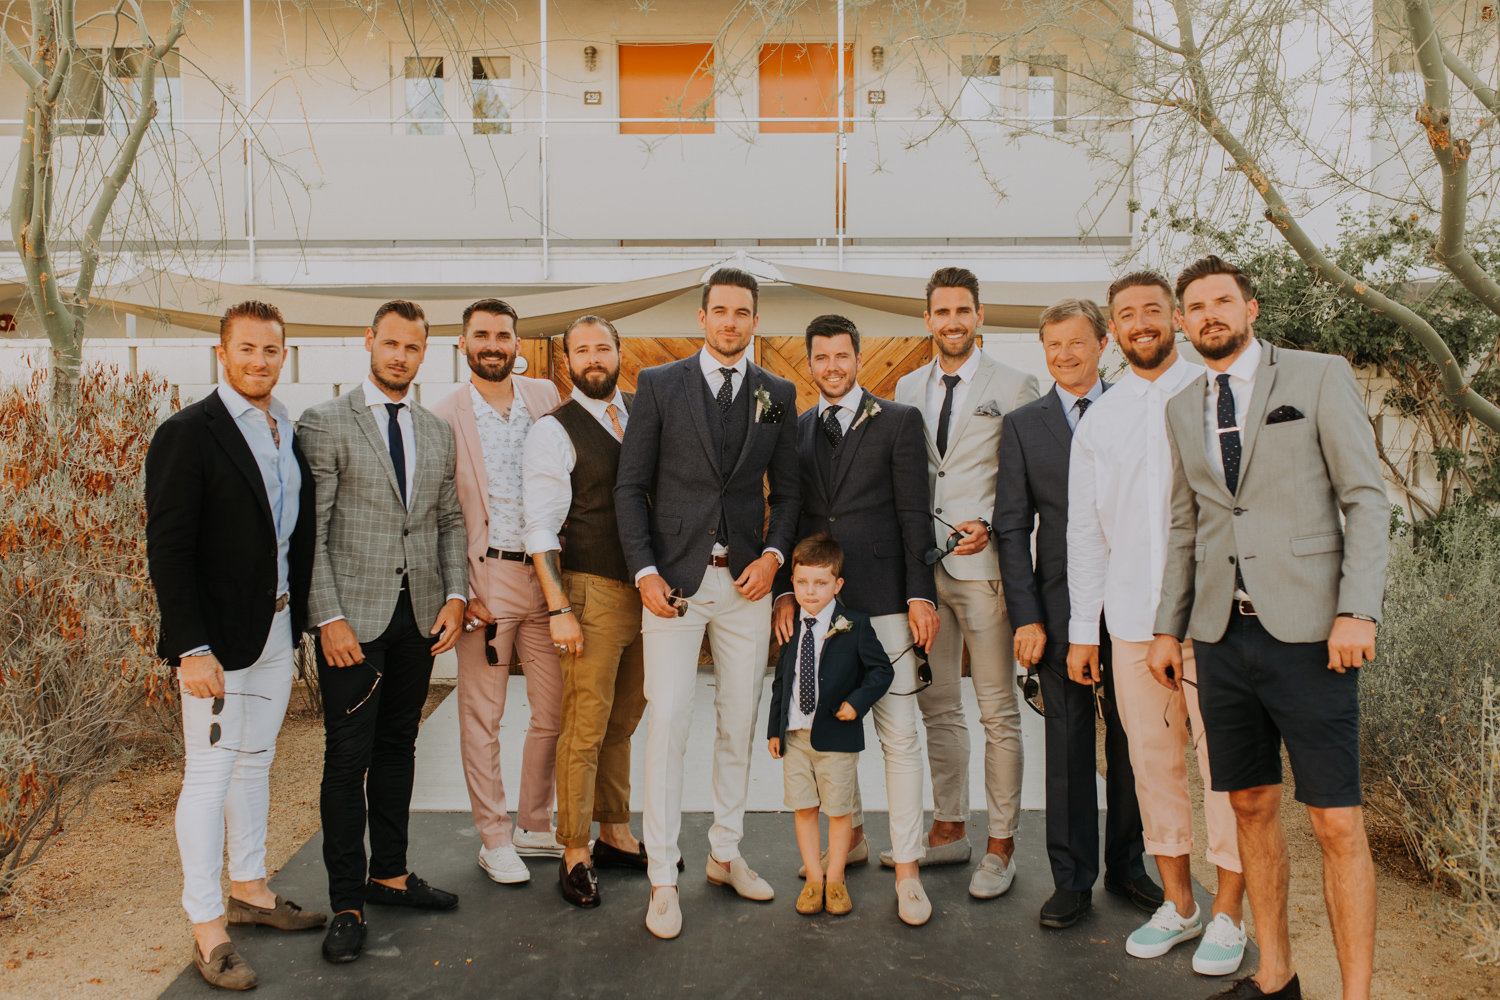 Brianna Broyles_Palm Springs Wedding Photographer_Ace Hotel Wedding_Ace Hotel Palm Springs-13